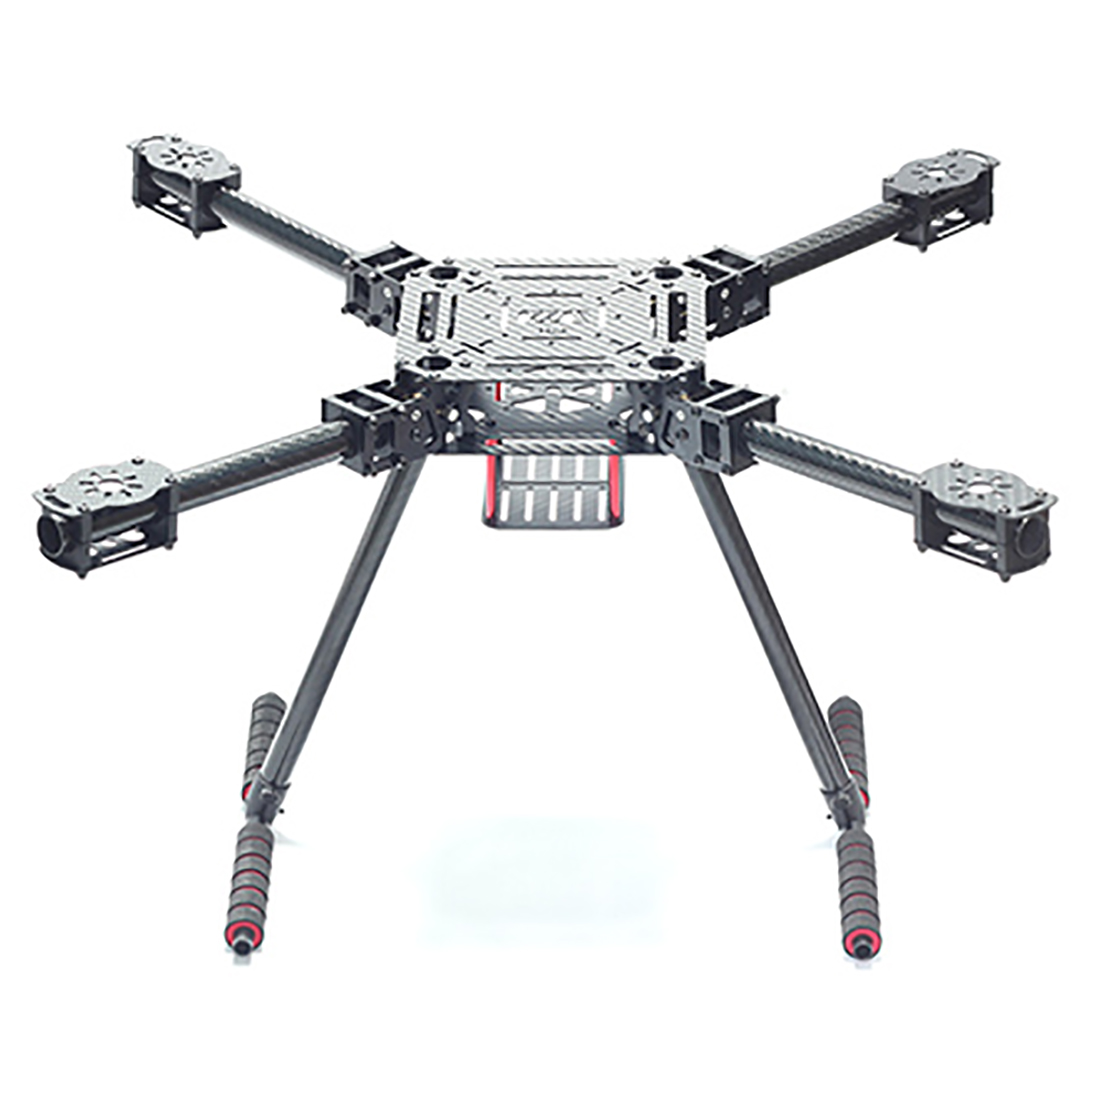 HOBBYINRC Lji ZD550 550mmFPV Quadcopter Carbon Fiber Folding Frame RC Quadcopter Accessories carbon fiber zmr250 c250 quadcopter